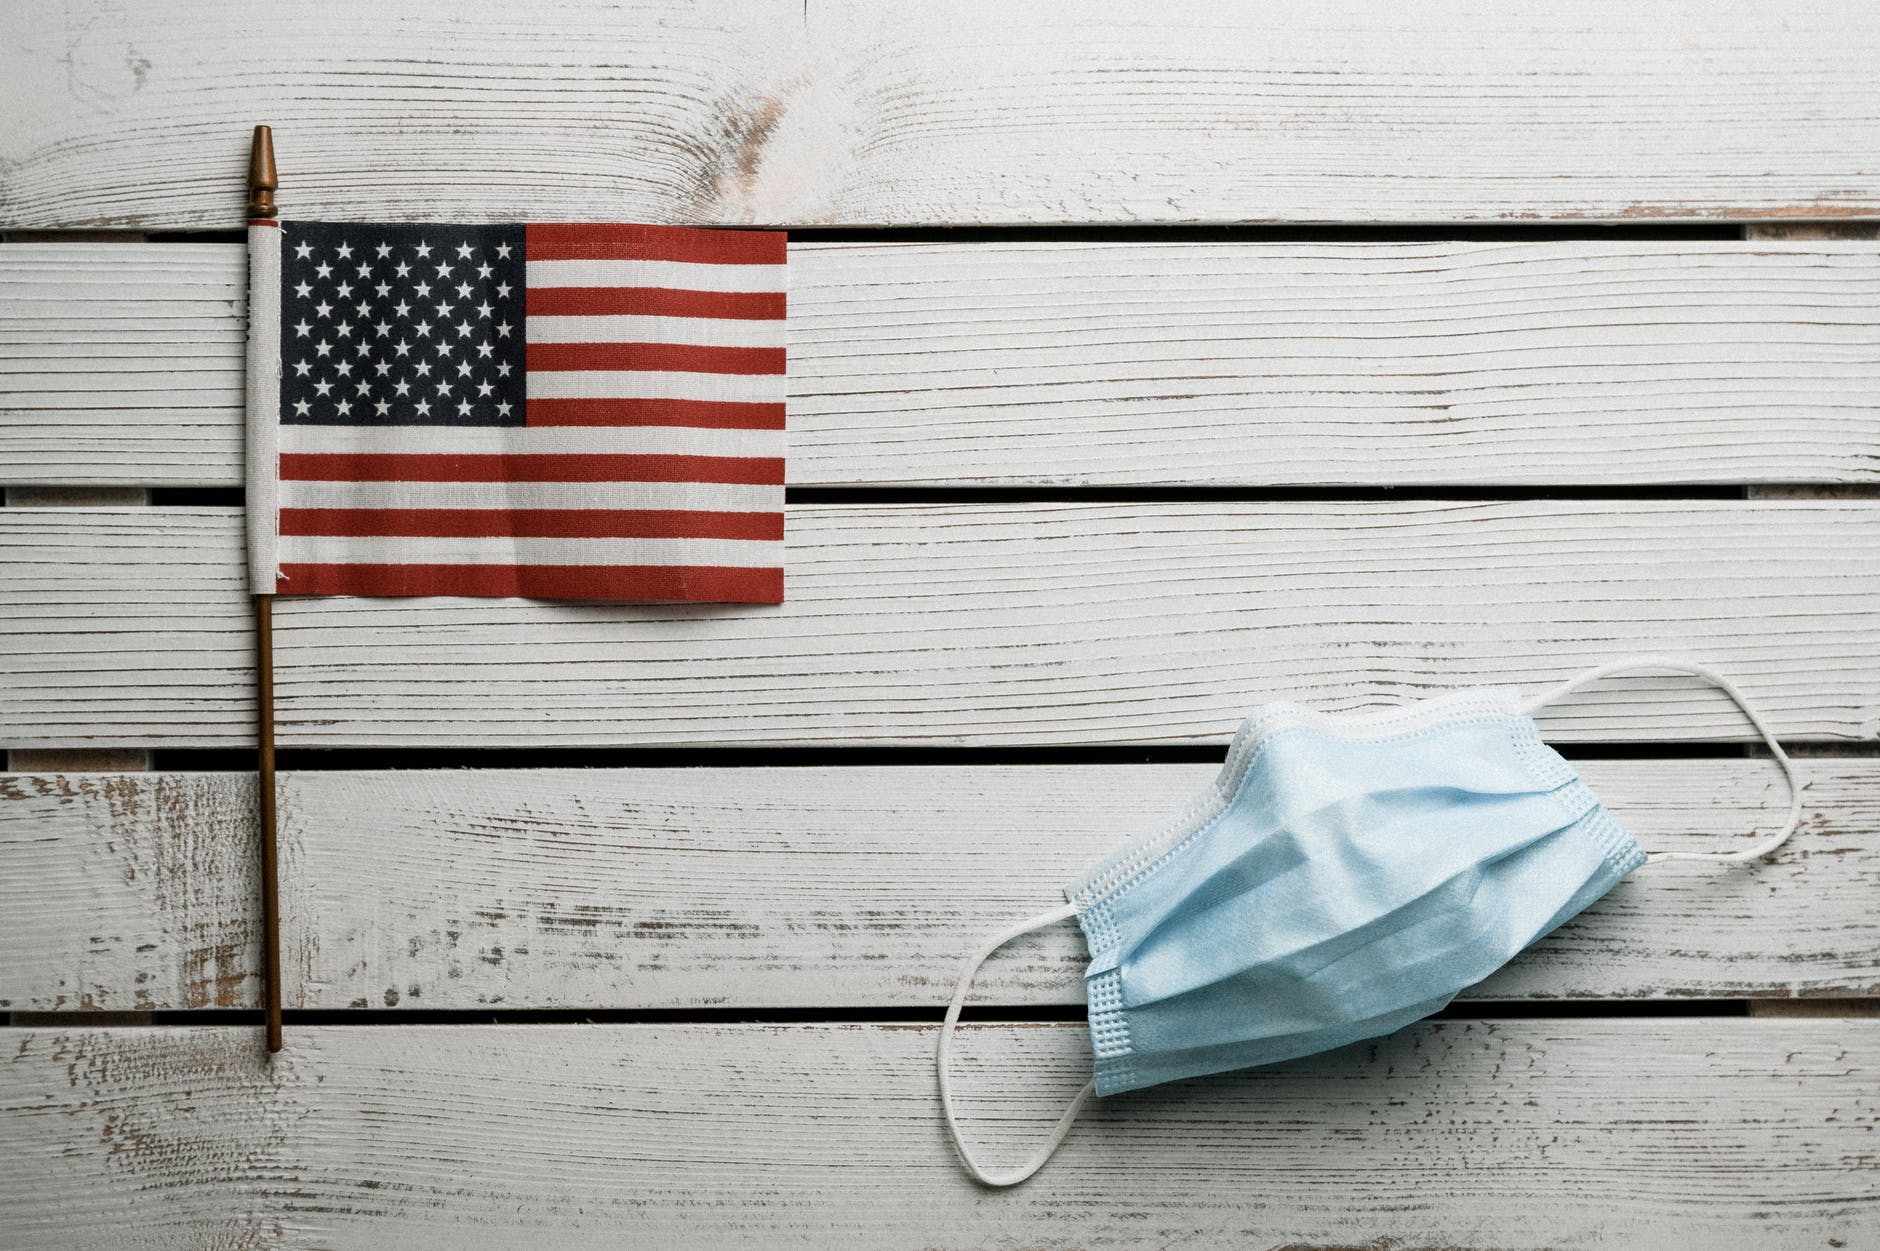 american flag and disposable mask on wooden table